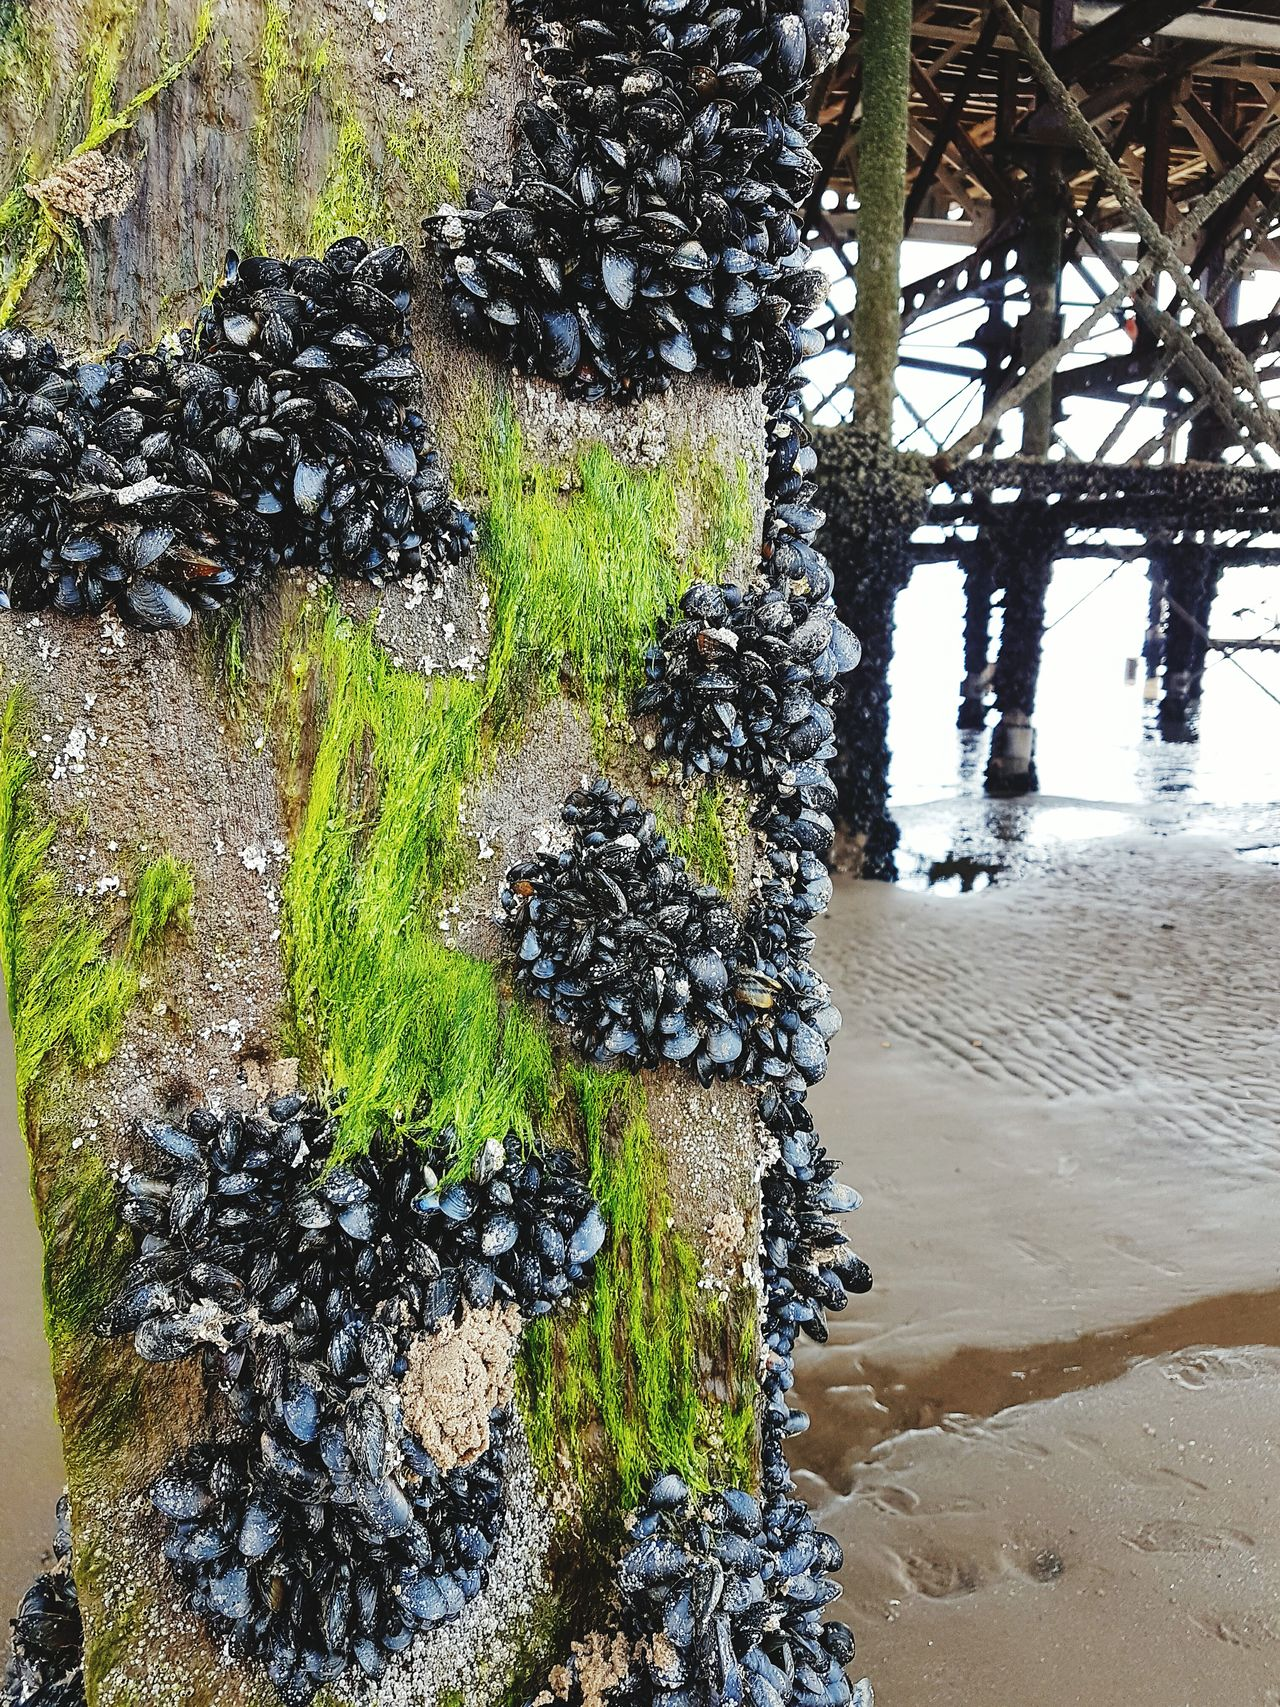 Shells Muscles Sea Water Seaweed Molo Pillars Pillars In The Water